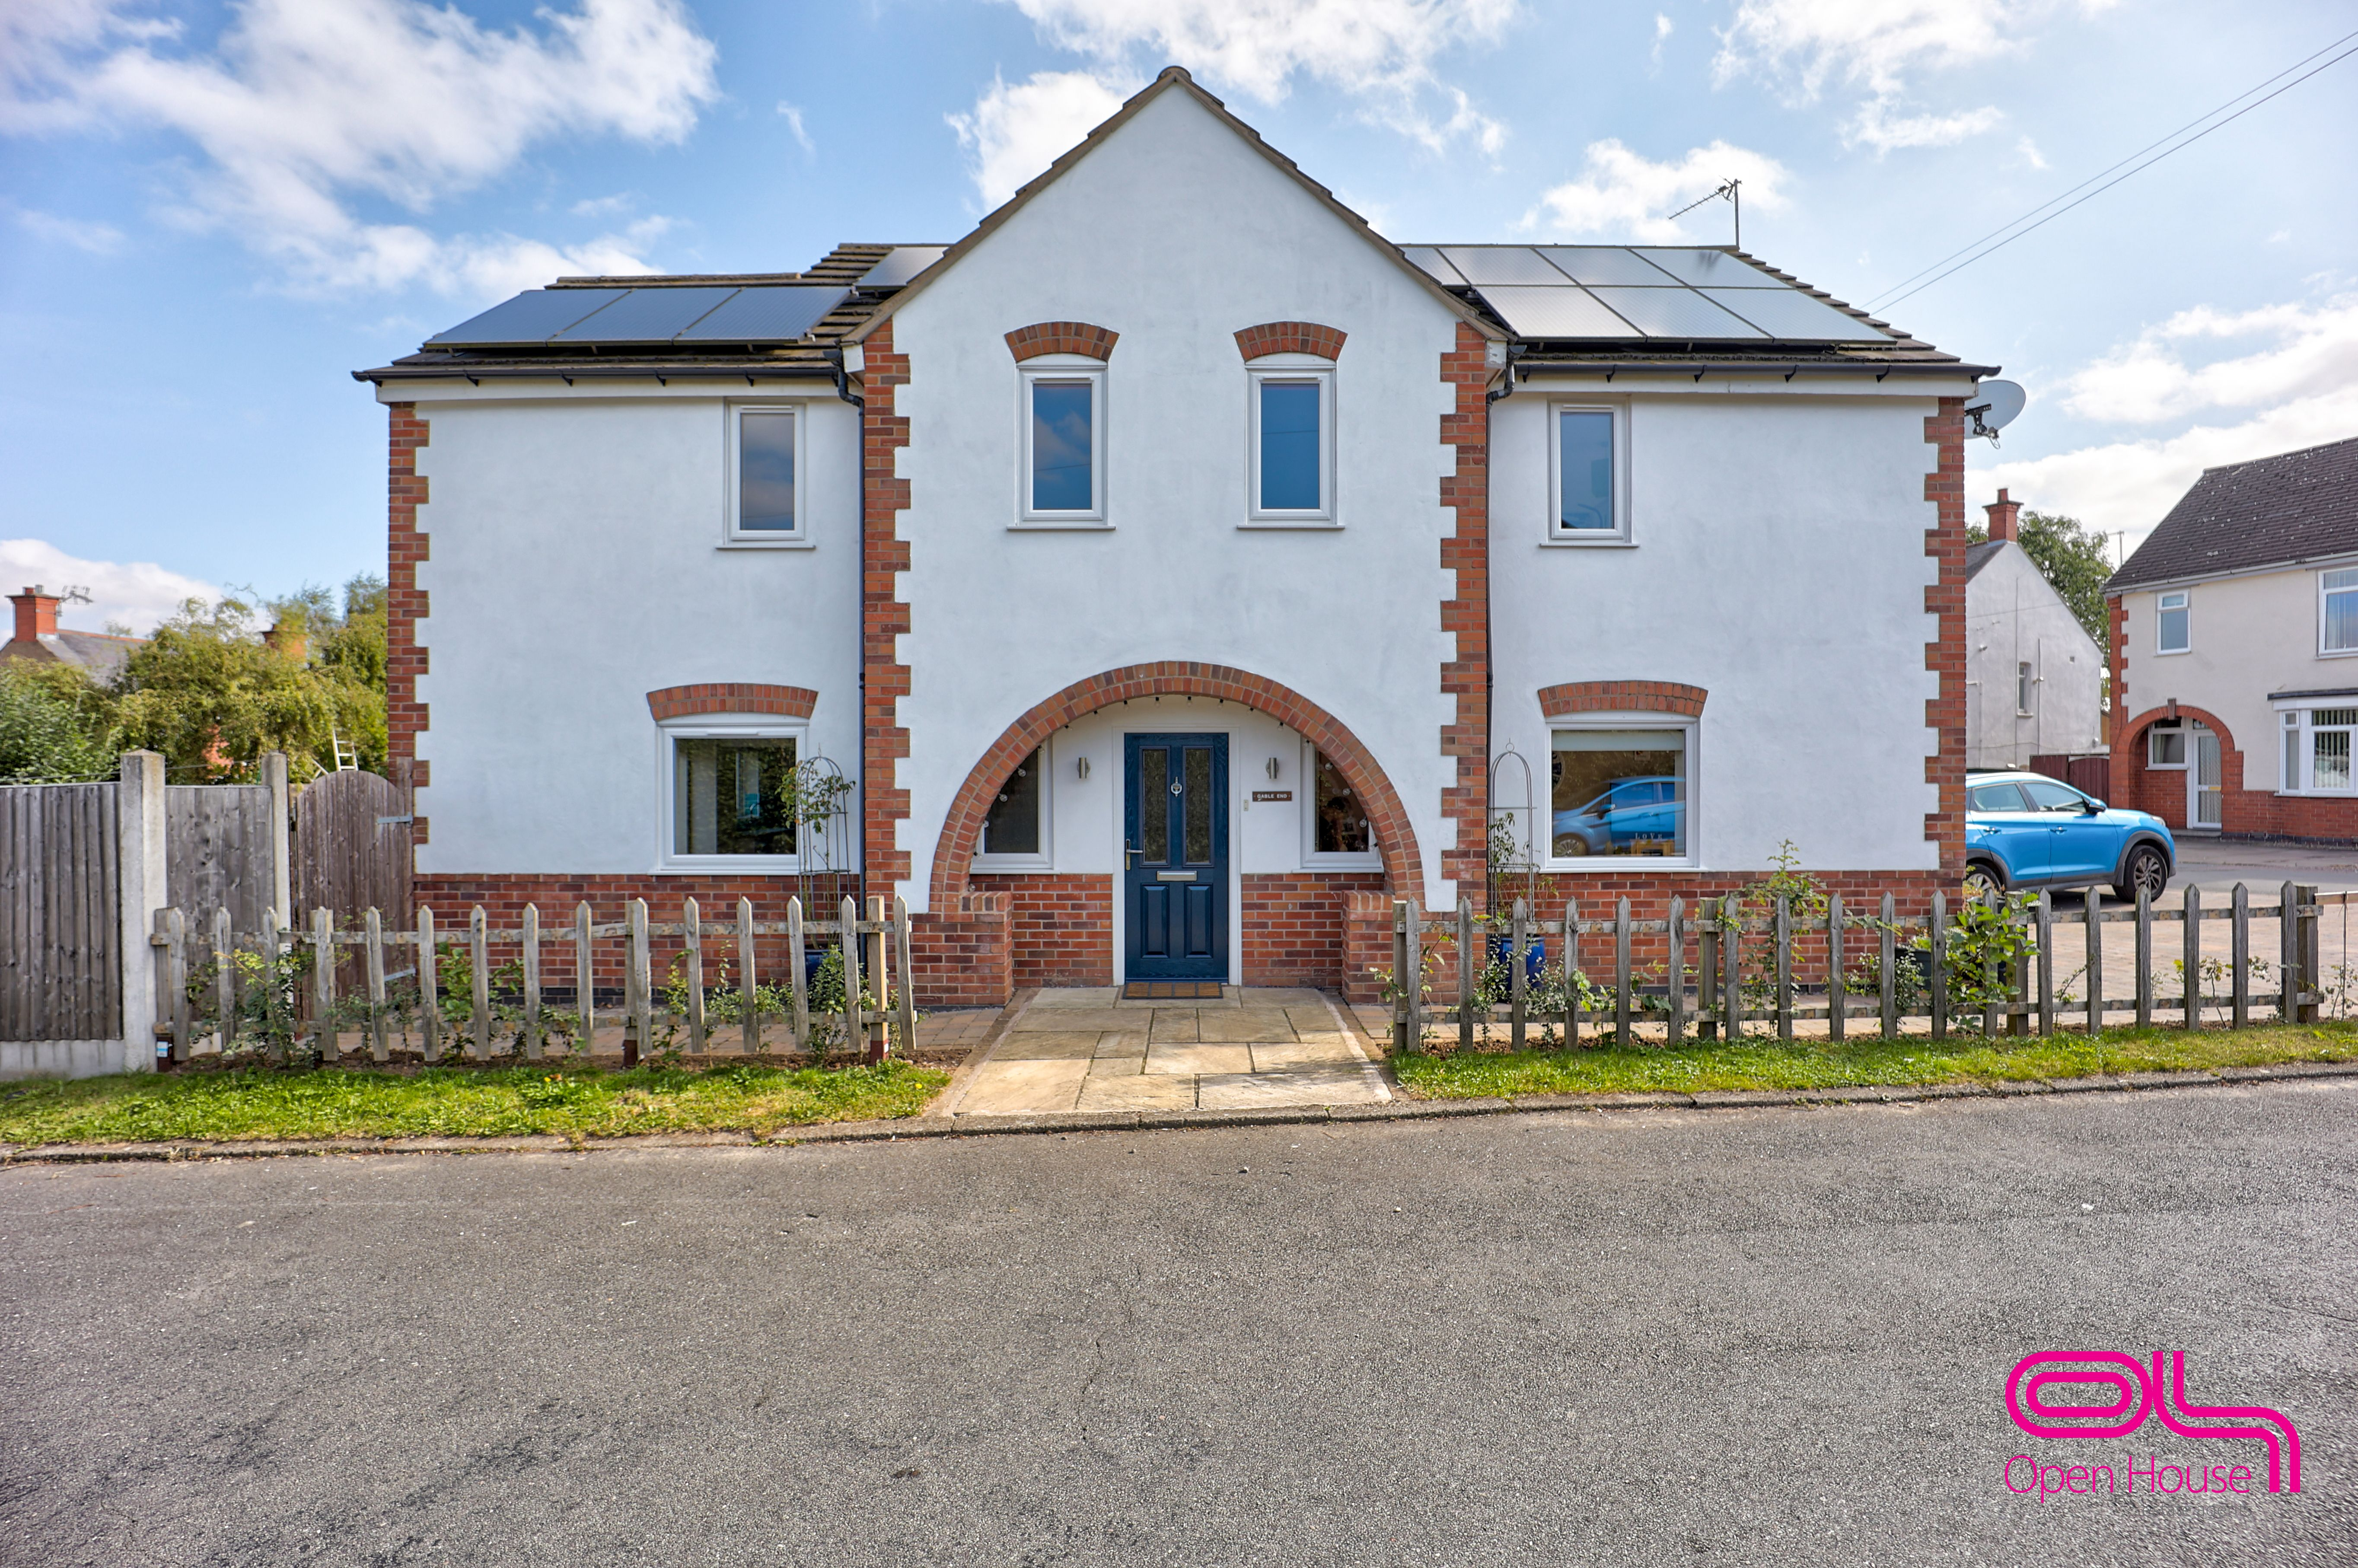 4 bed detached house for sale in Flamville Road, Burbage, LE10, Hinckley 0